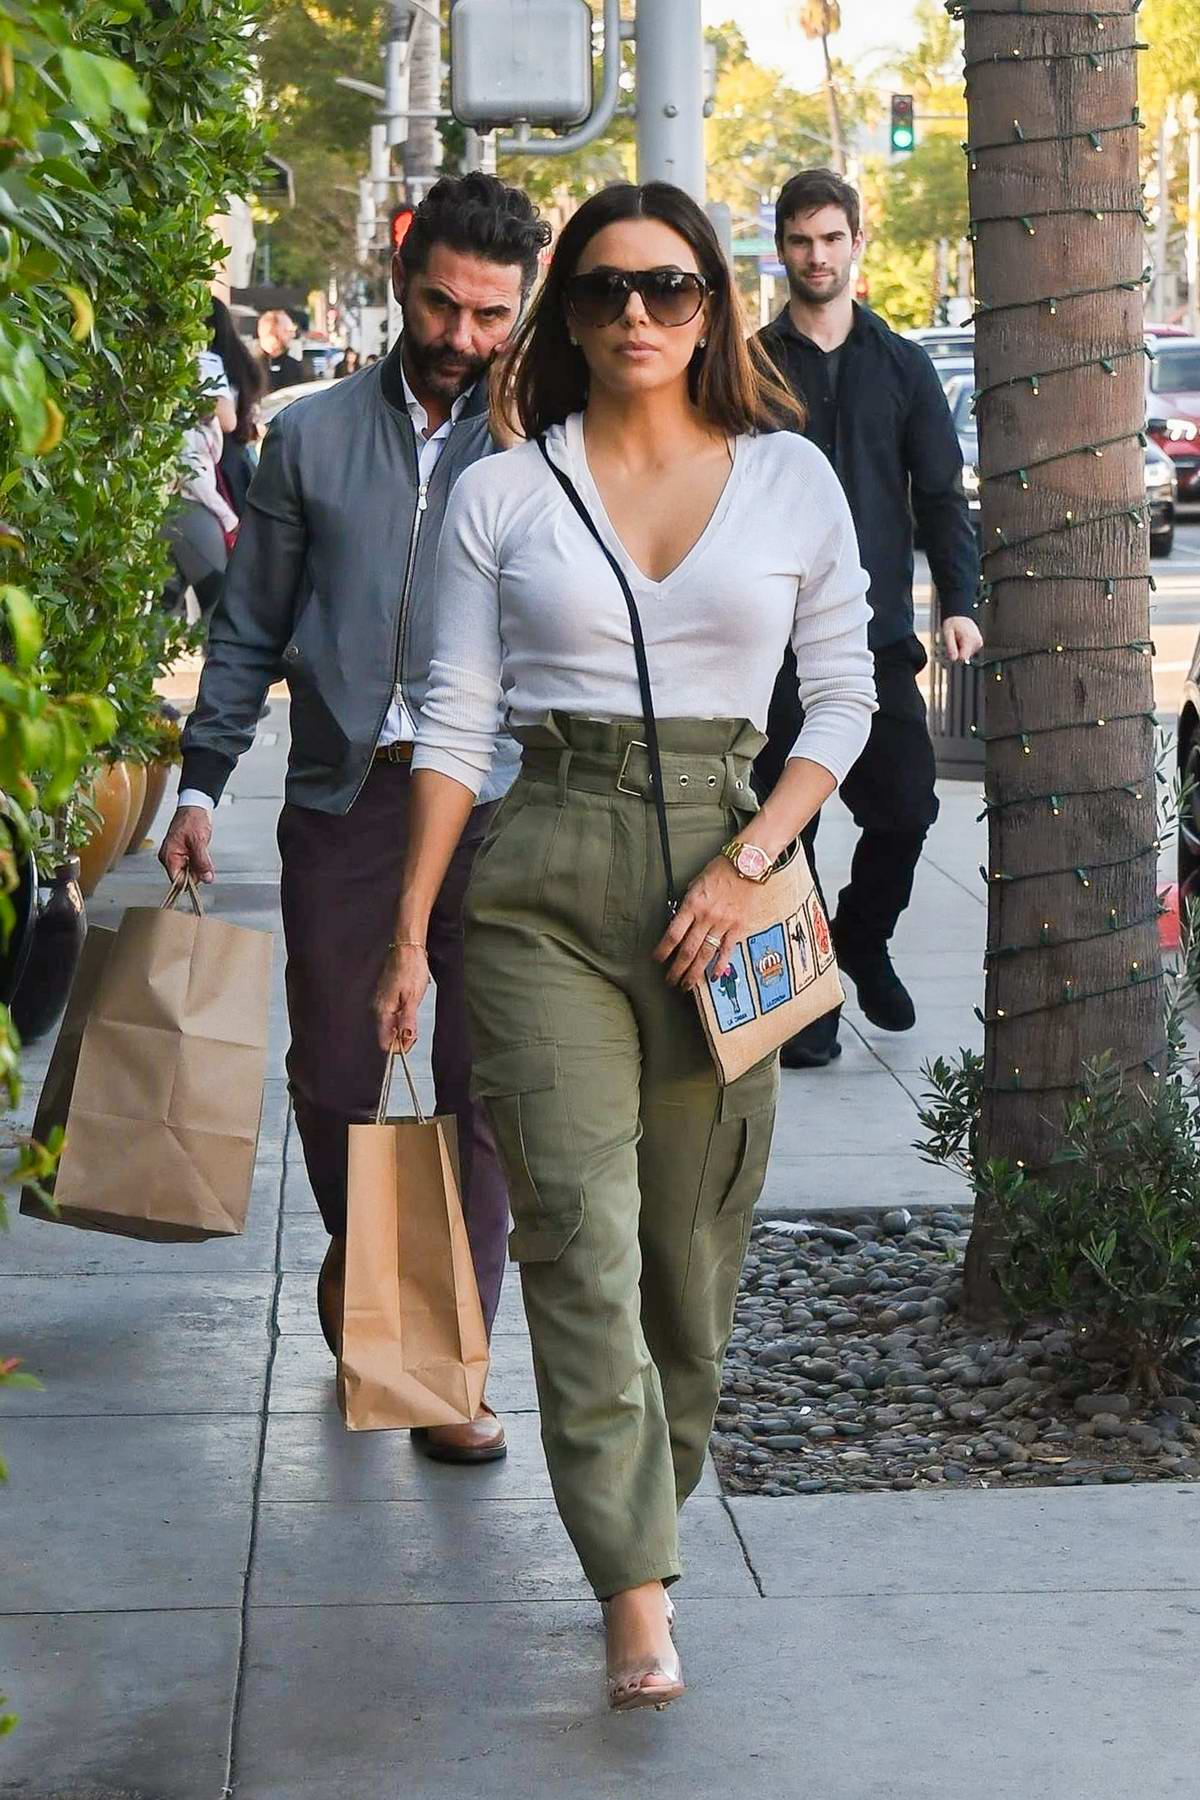 Eva Longoria looks great in white top and green pants while out shopping with husband José Bastón in Beverly Hills, Los Angeles